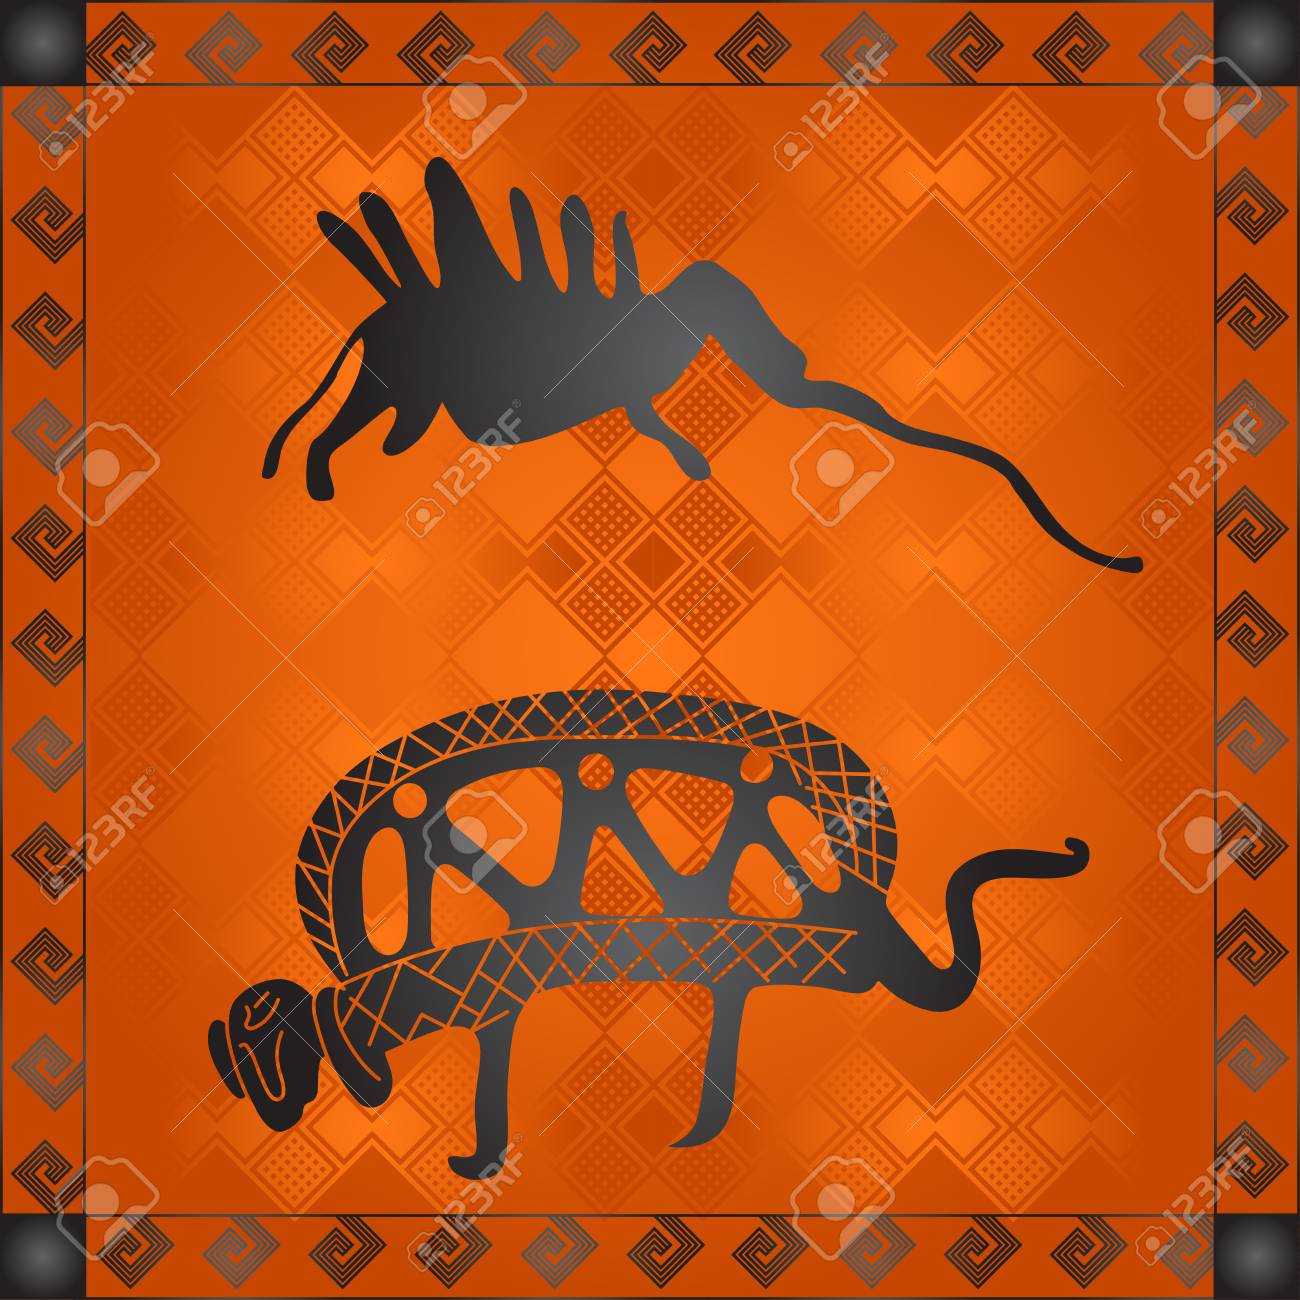 African Tribes Cultural Symbolic Ornaments Royalty Free Cliparts